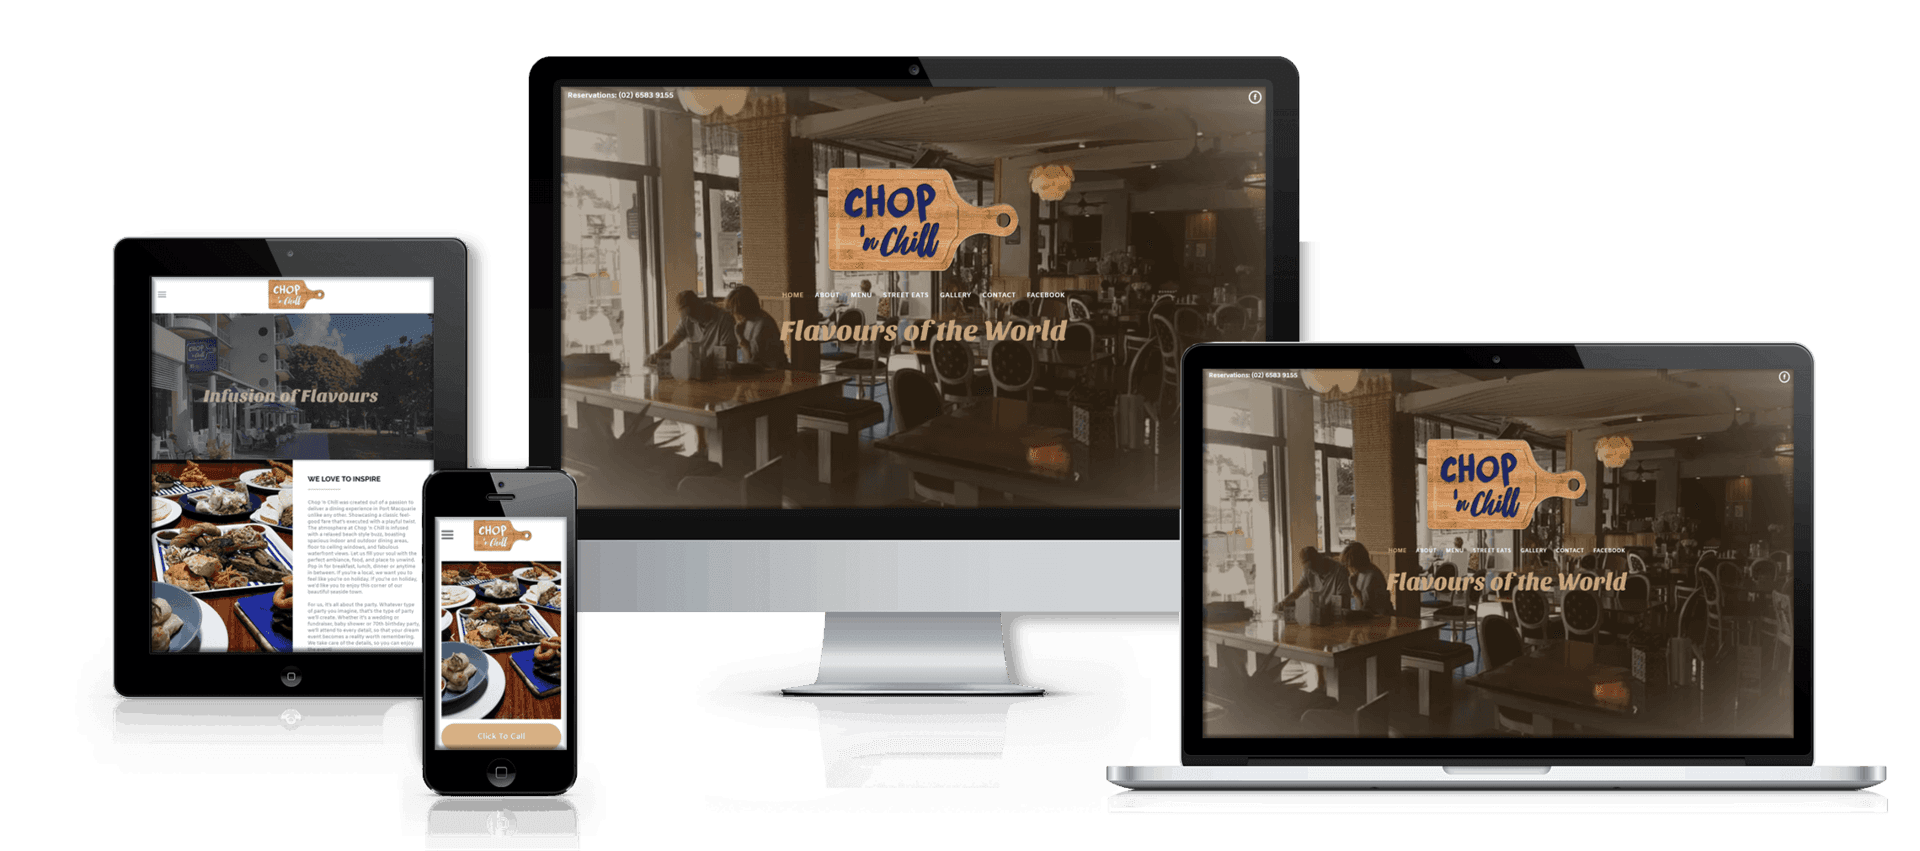 Edgezone Media client Chop And Chill website image.